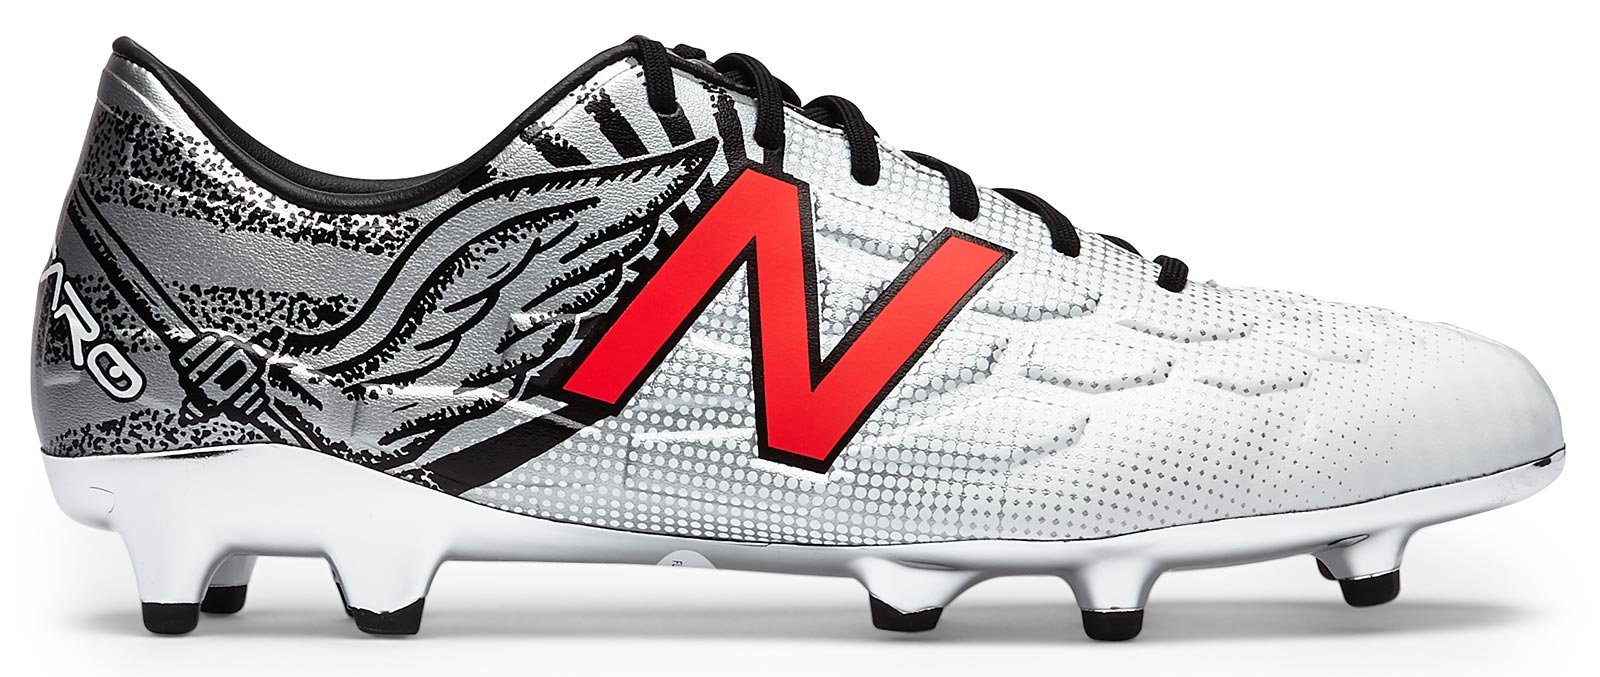 New balance visaro aaron ramsey limited edition boots released new balance visaro ramsey limited edition white black red biocorpaavc Choice Image